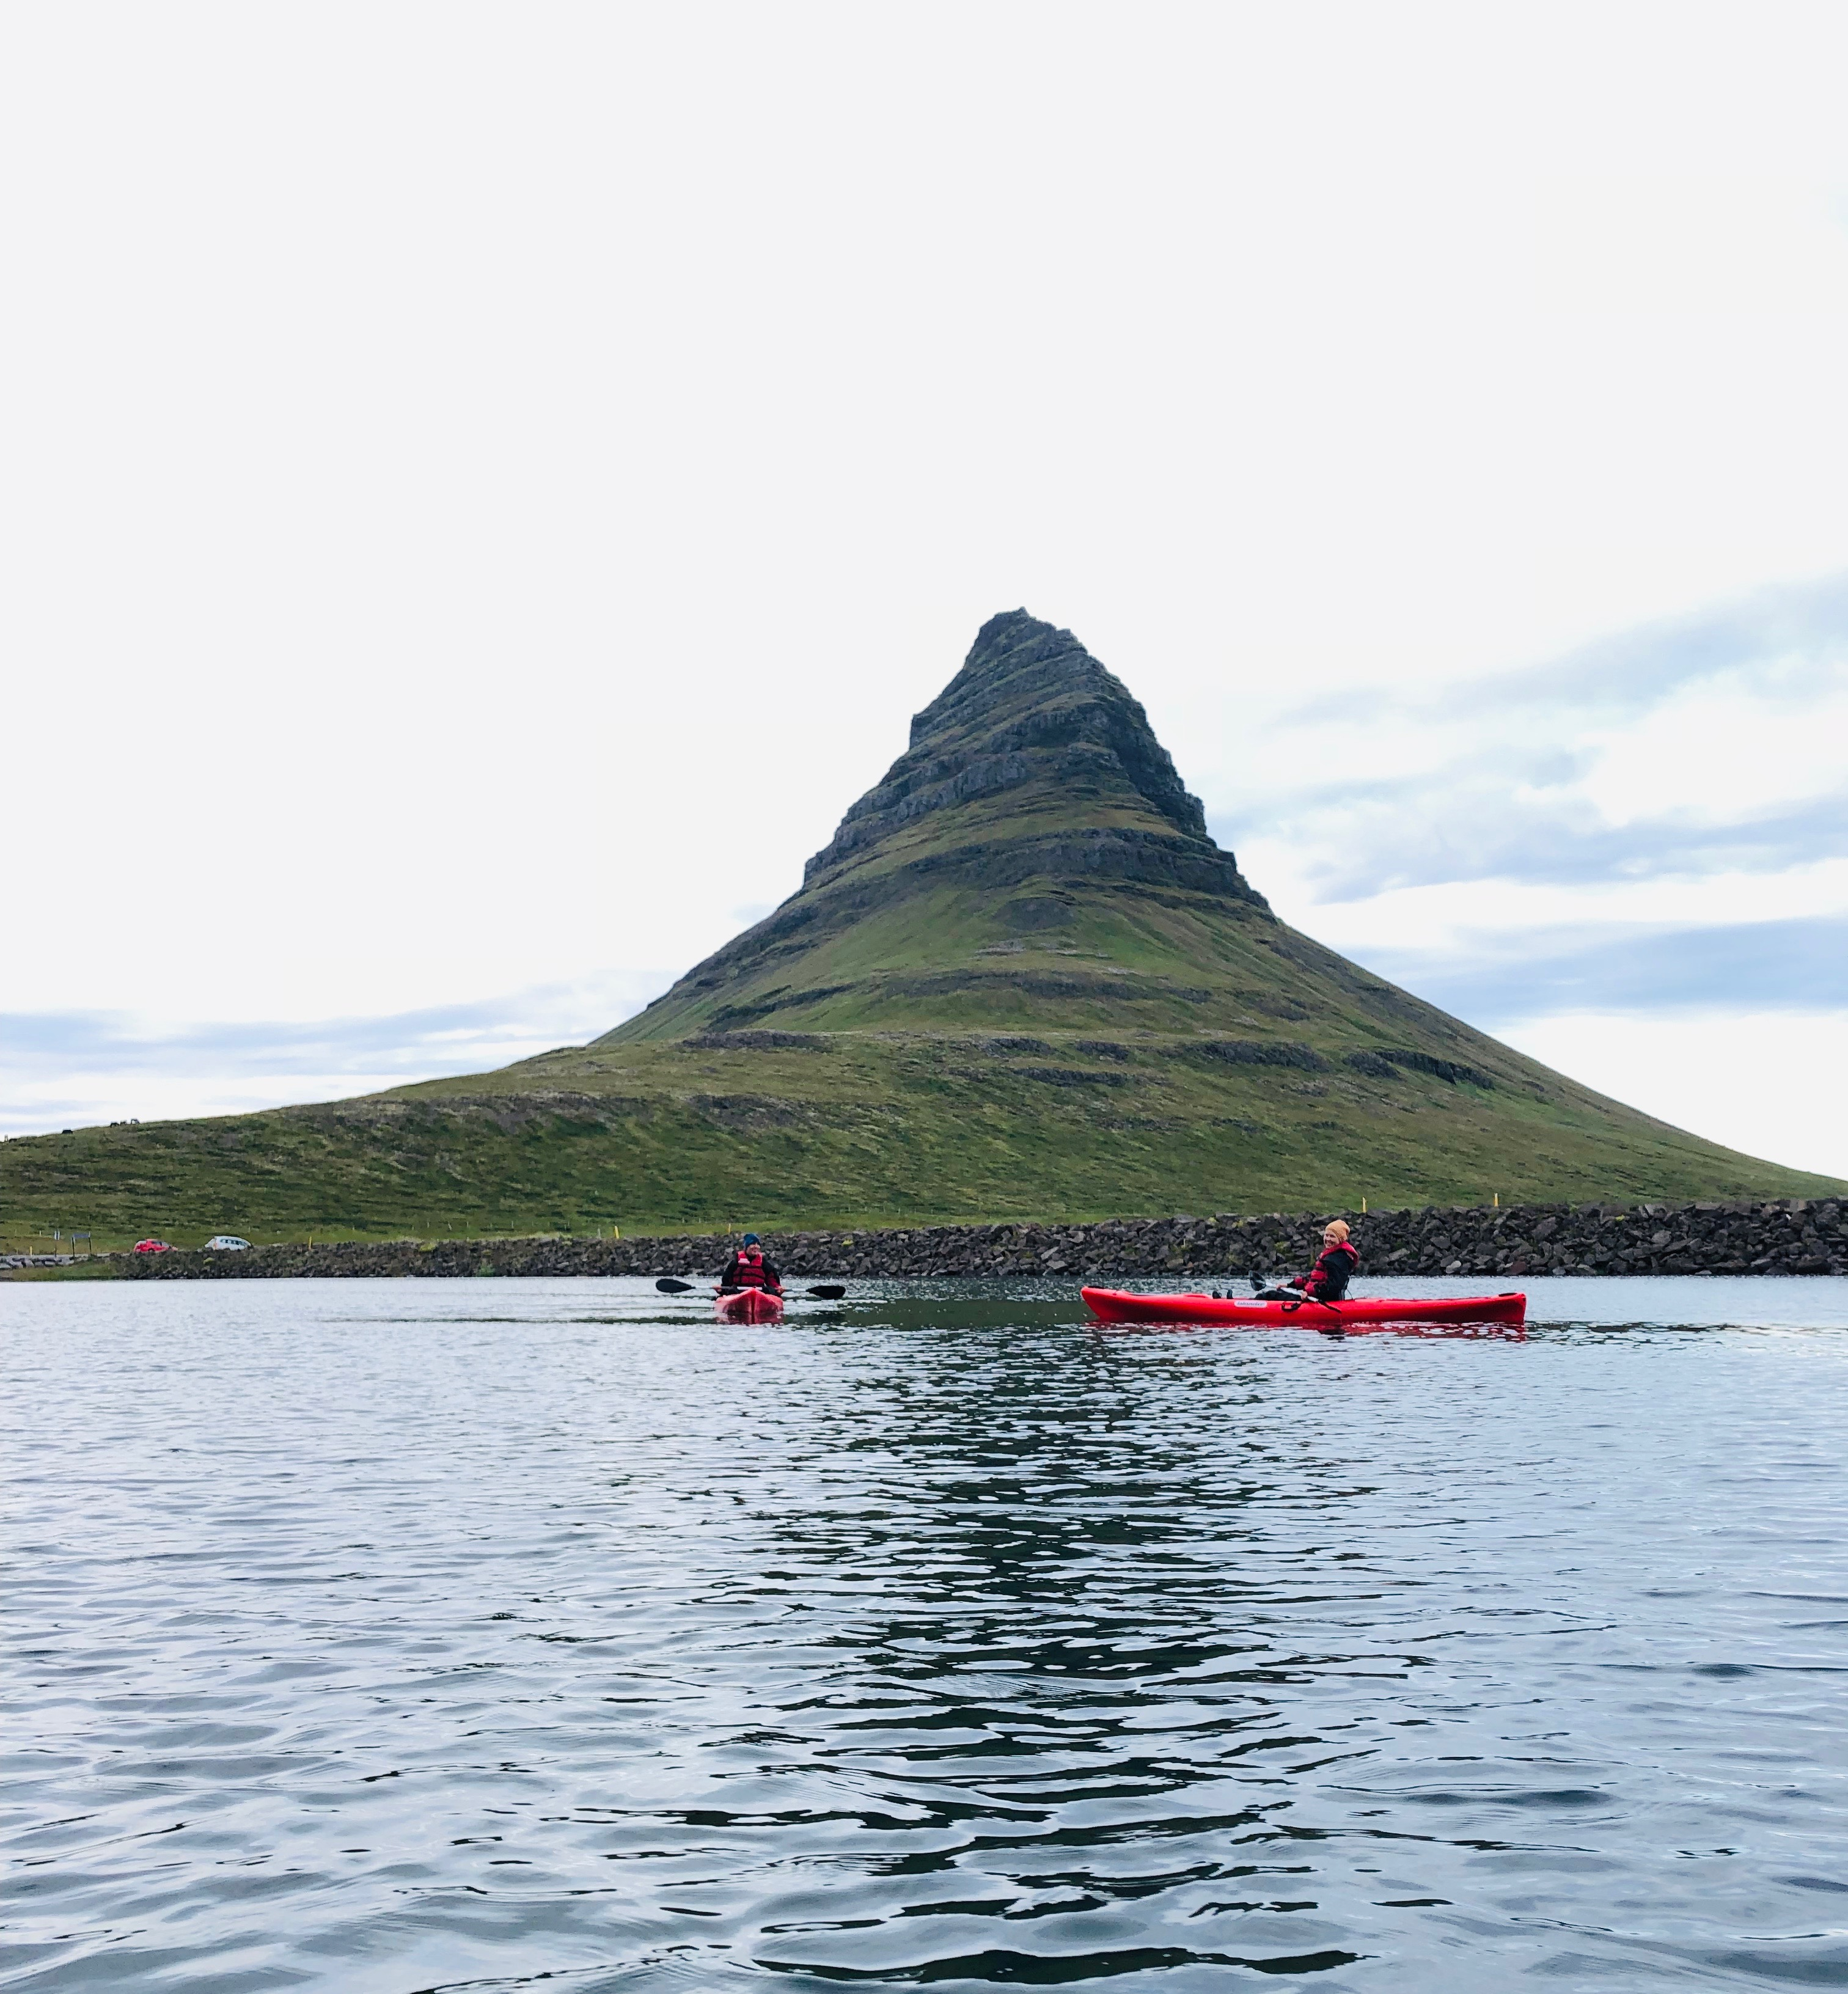 Kirkjufell Mountain is seen in the background as kayakers happily enjoy the tour